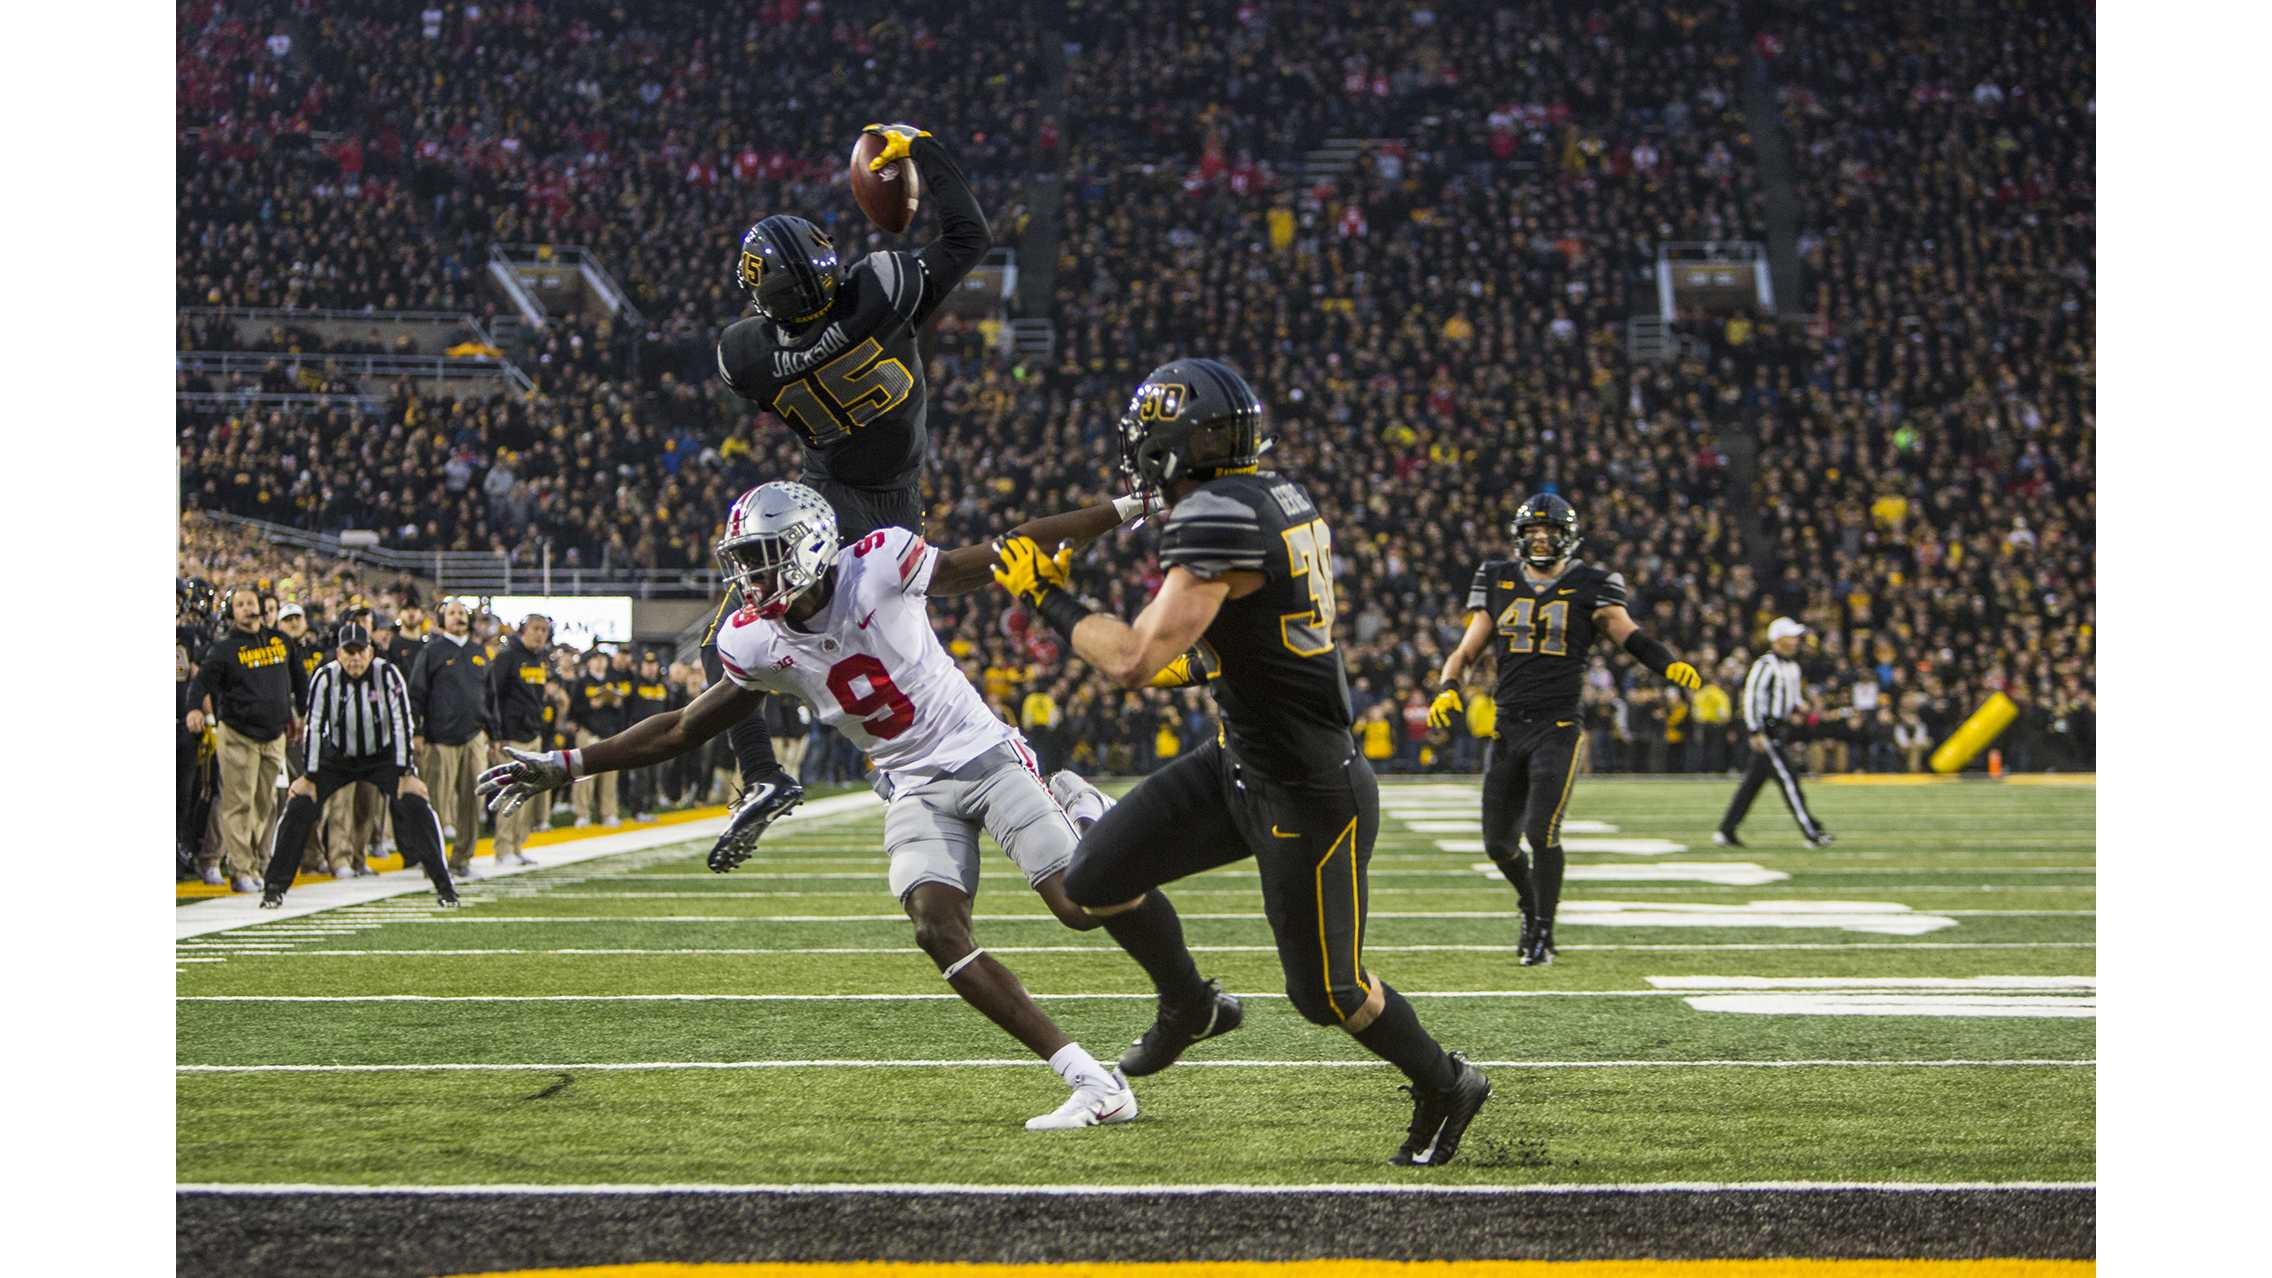 Iowa Cornerback Josh Jackson makes a jumping one handed interception during Iowa's game against Ohio State at Kinnick Stadium on Saturday, Nov. 4, 2017. Jackson made three interceptions on the day as the Hawkeyes defeated the Buckeyes 55 to 24. (Nick Rohlman/The Daily Iowan)